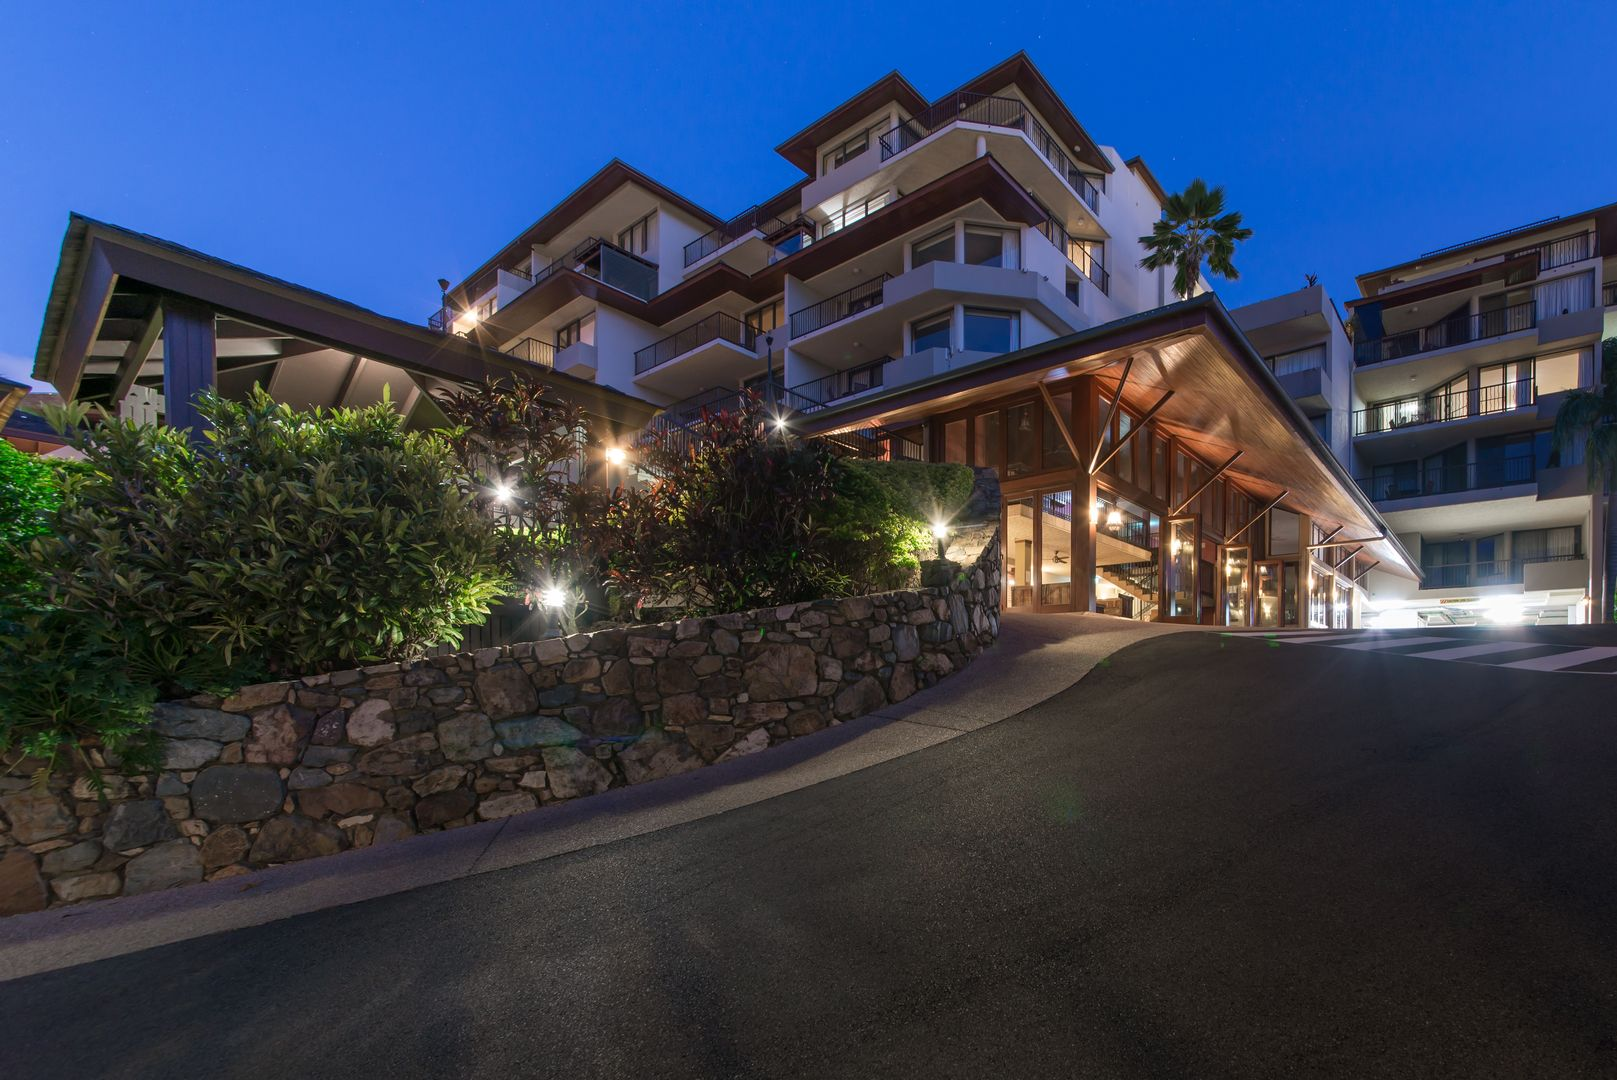 7/4 Golden Orchid Drive, AIRLIE BEACH QLD 4802, Image 1